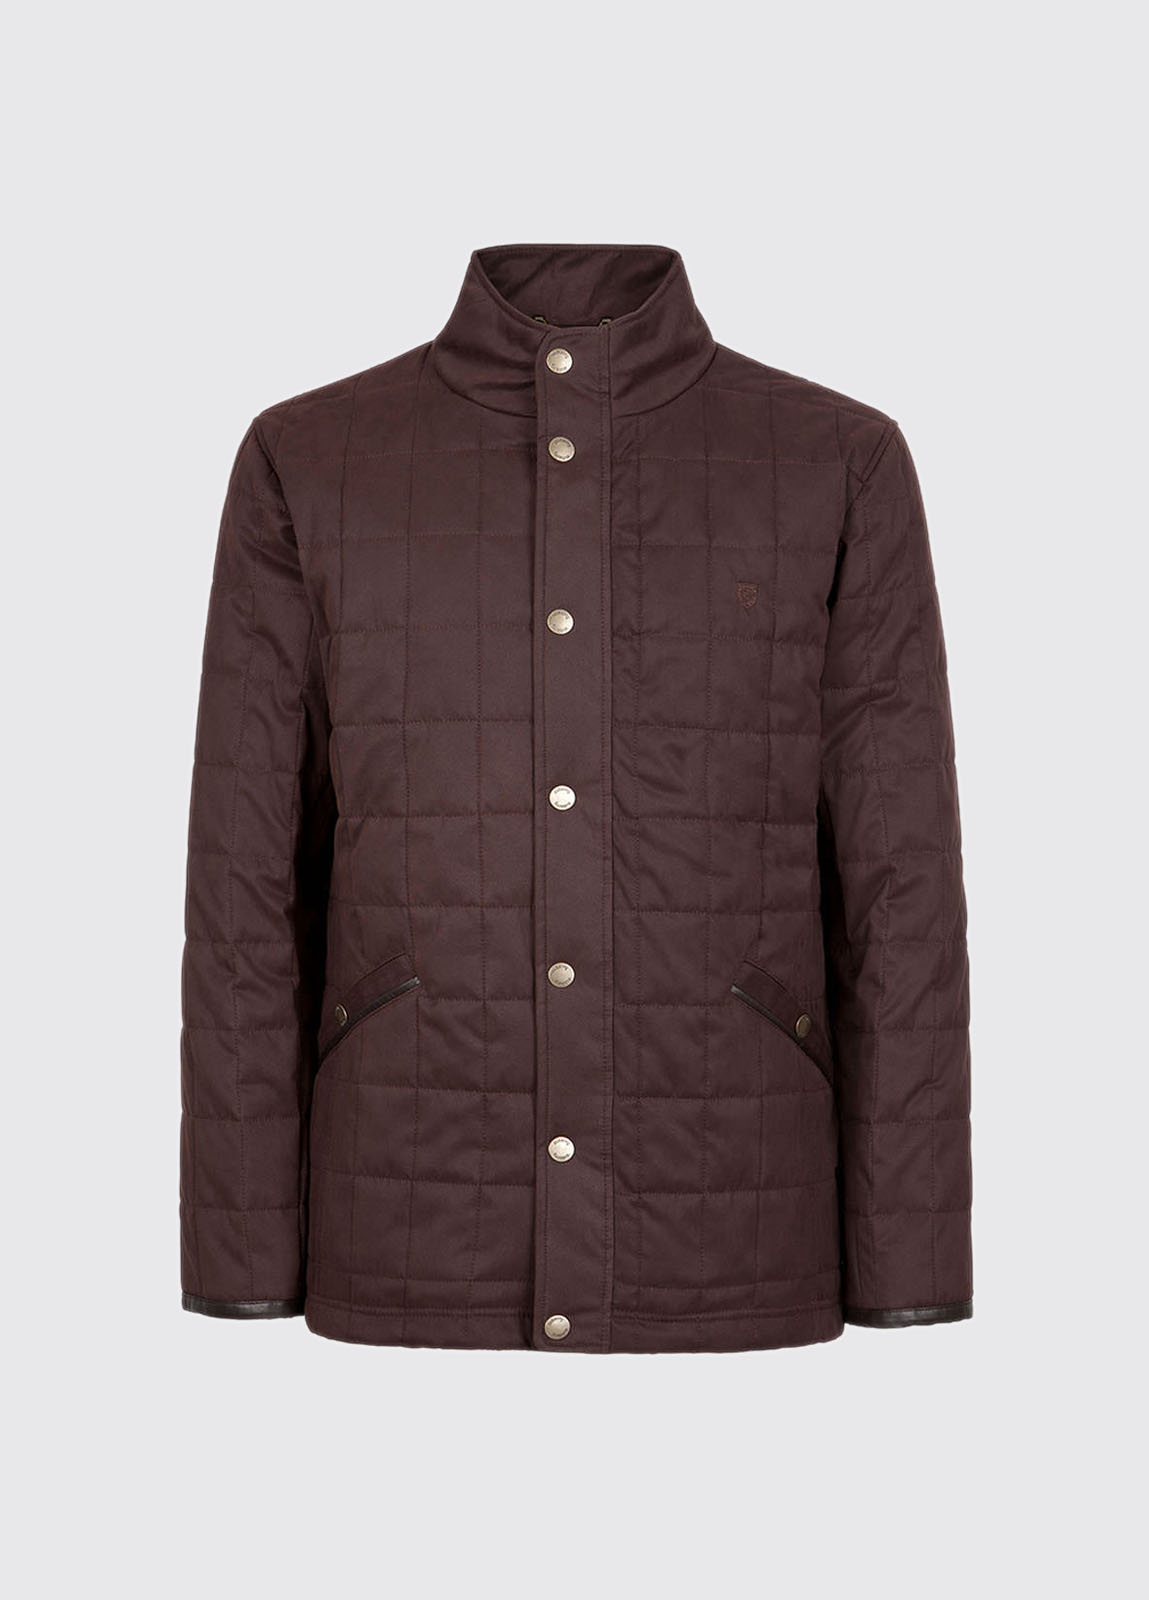 Beckett Quilted Jacket - Chestnut